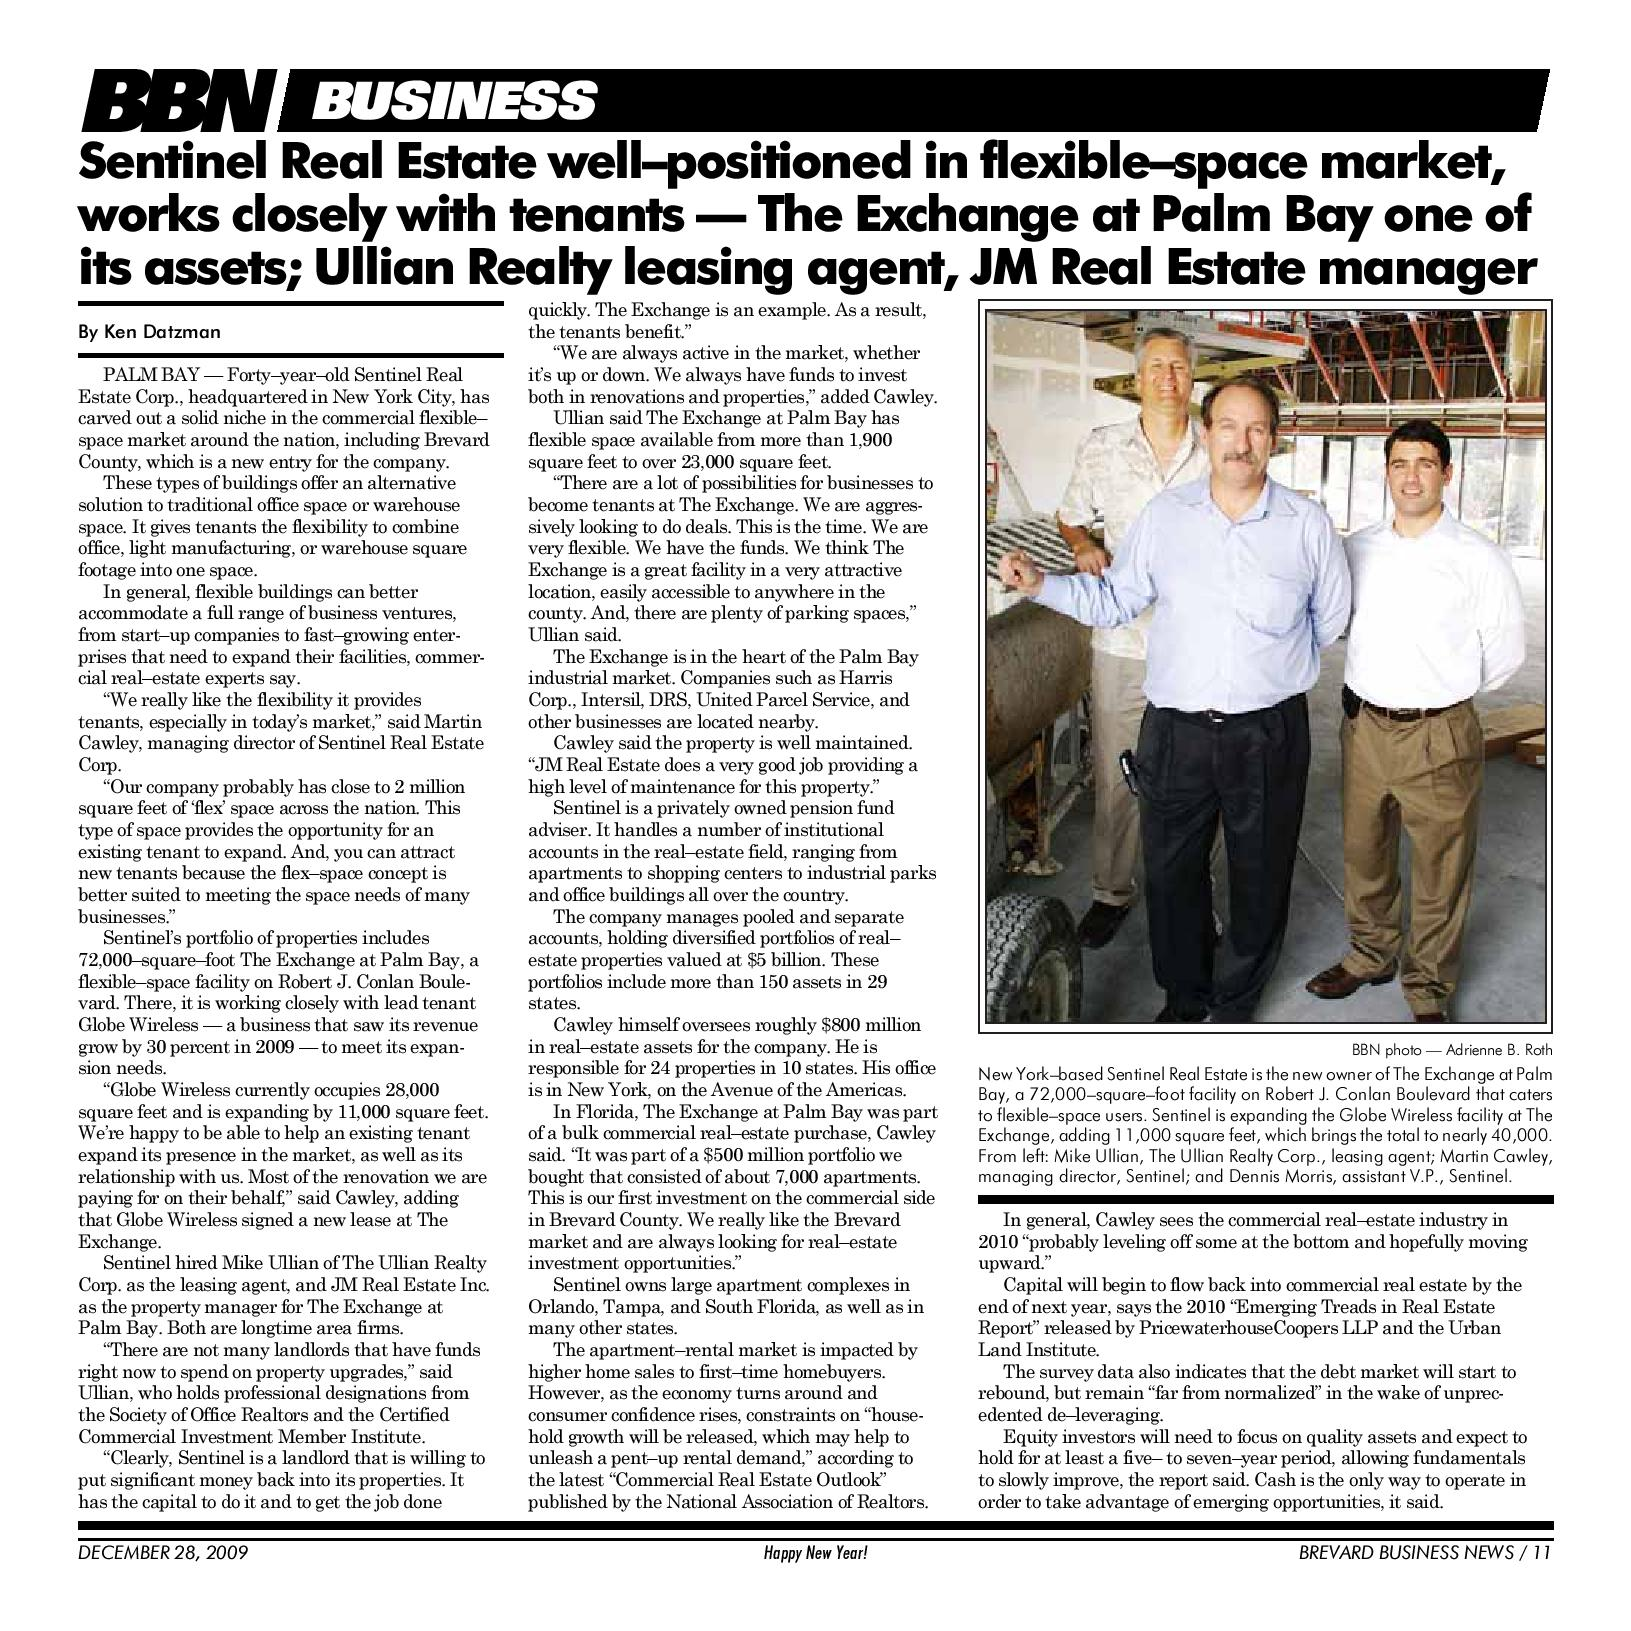 Ullian Realty BBN Business Article Image